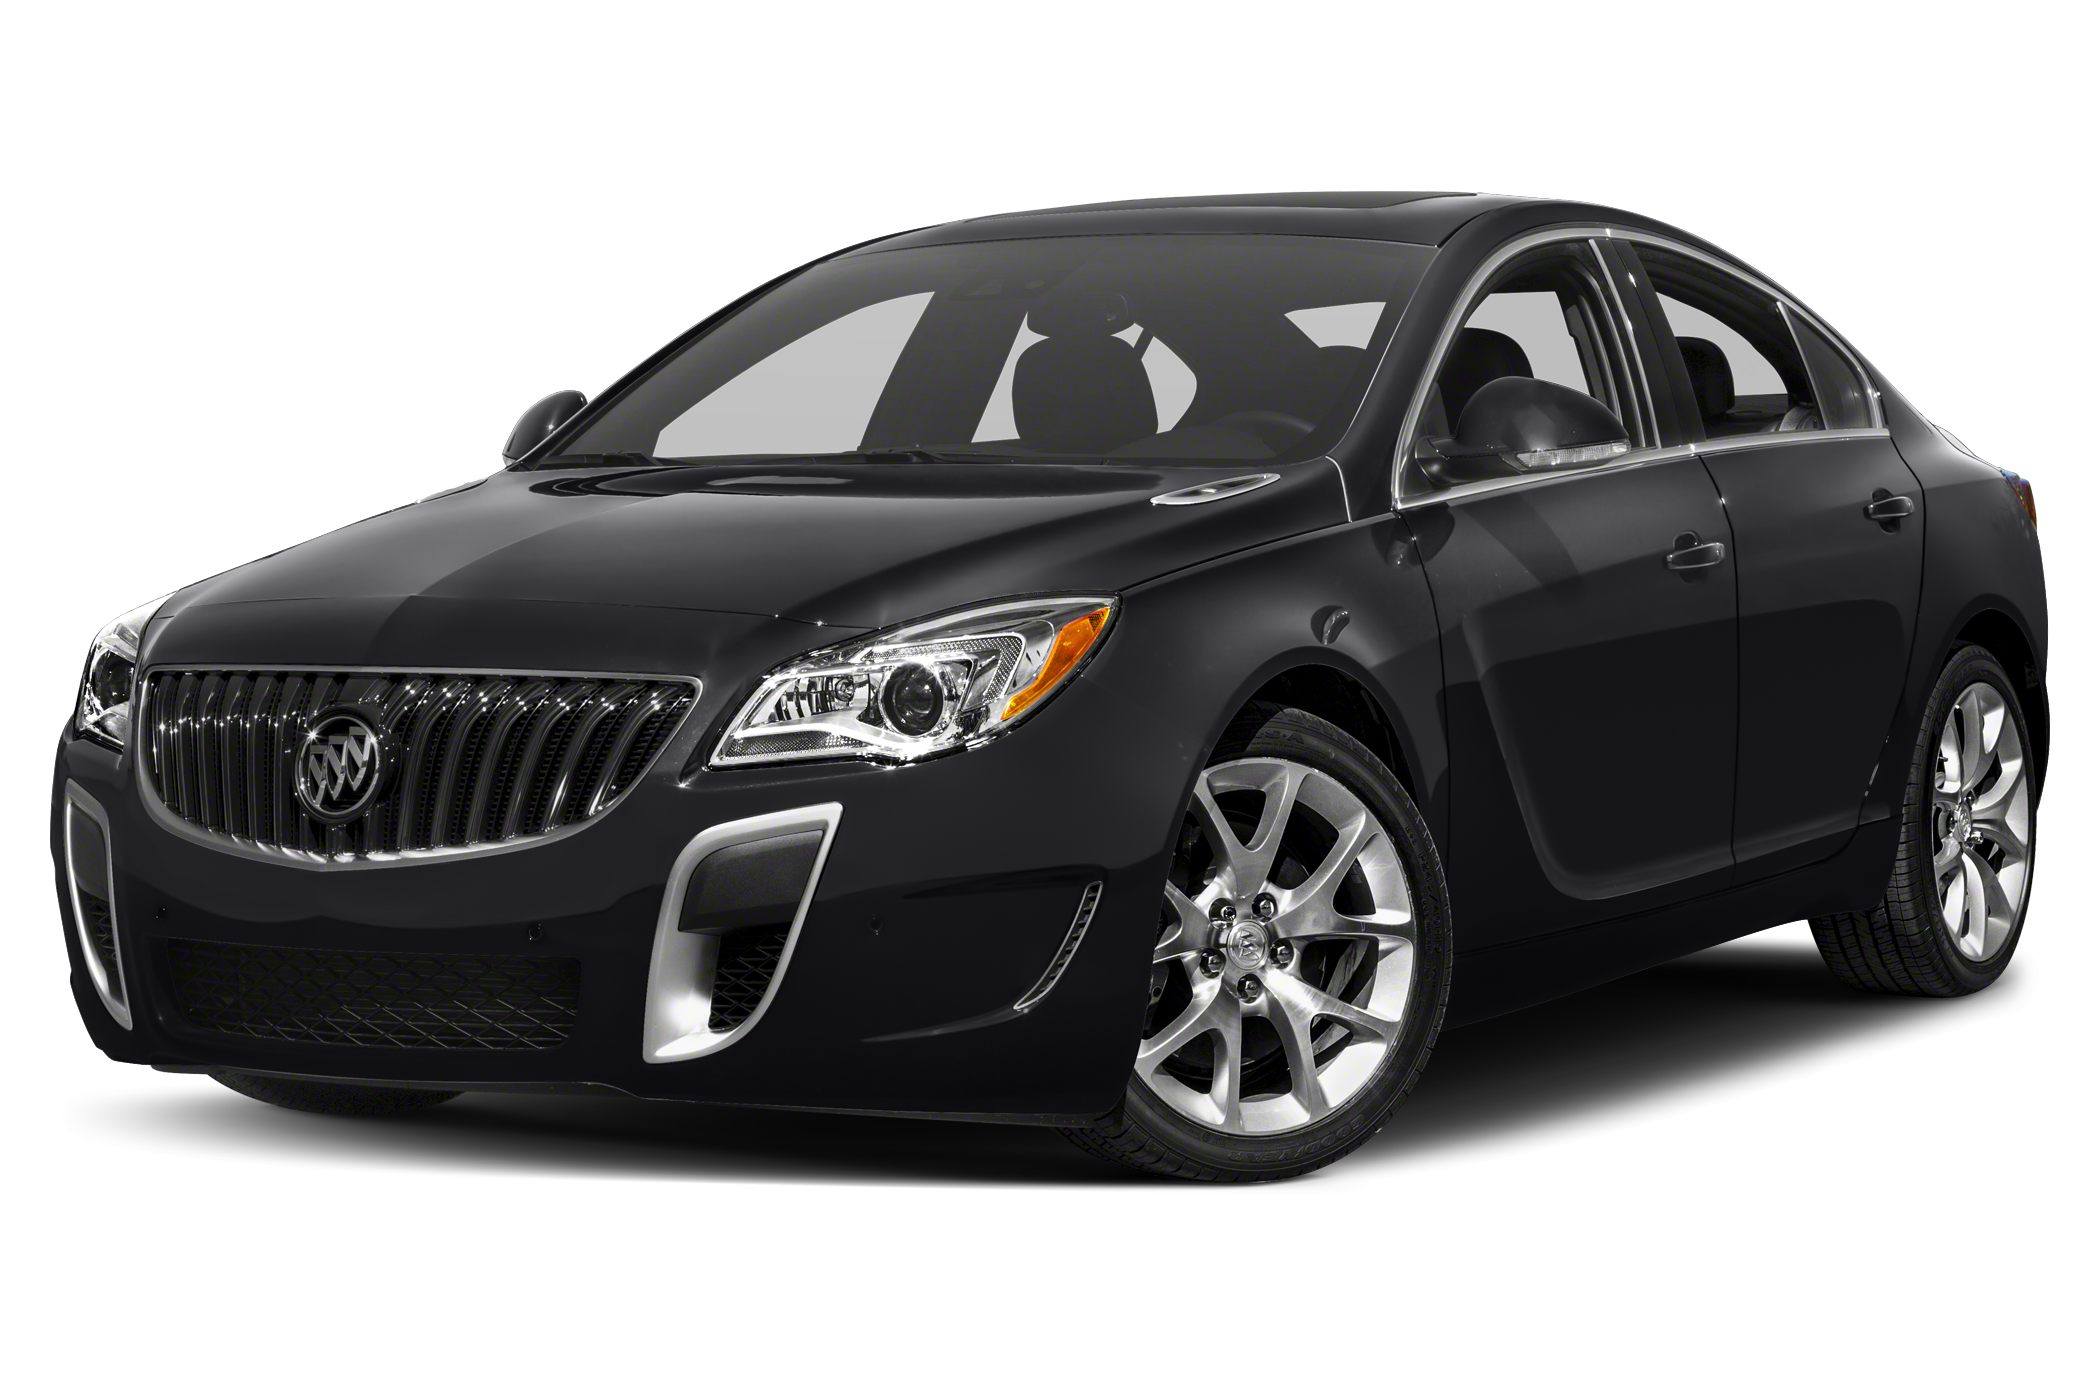 Buick Regal: Safety Belts